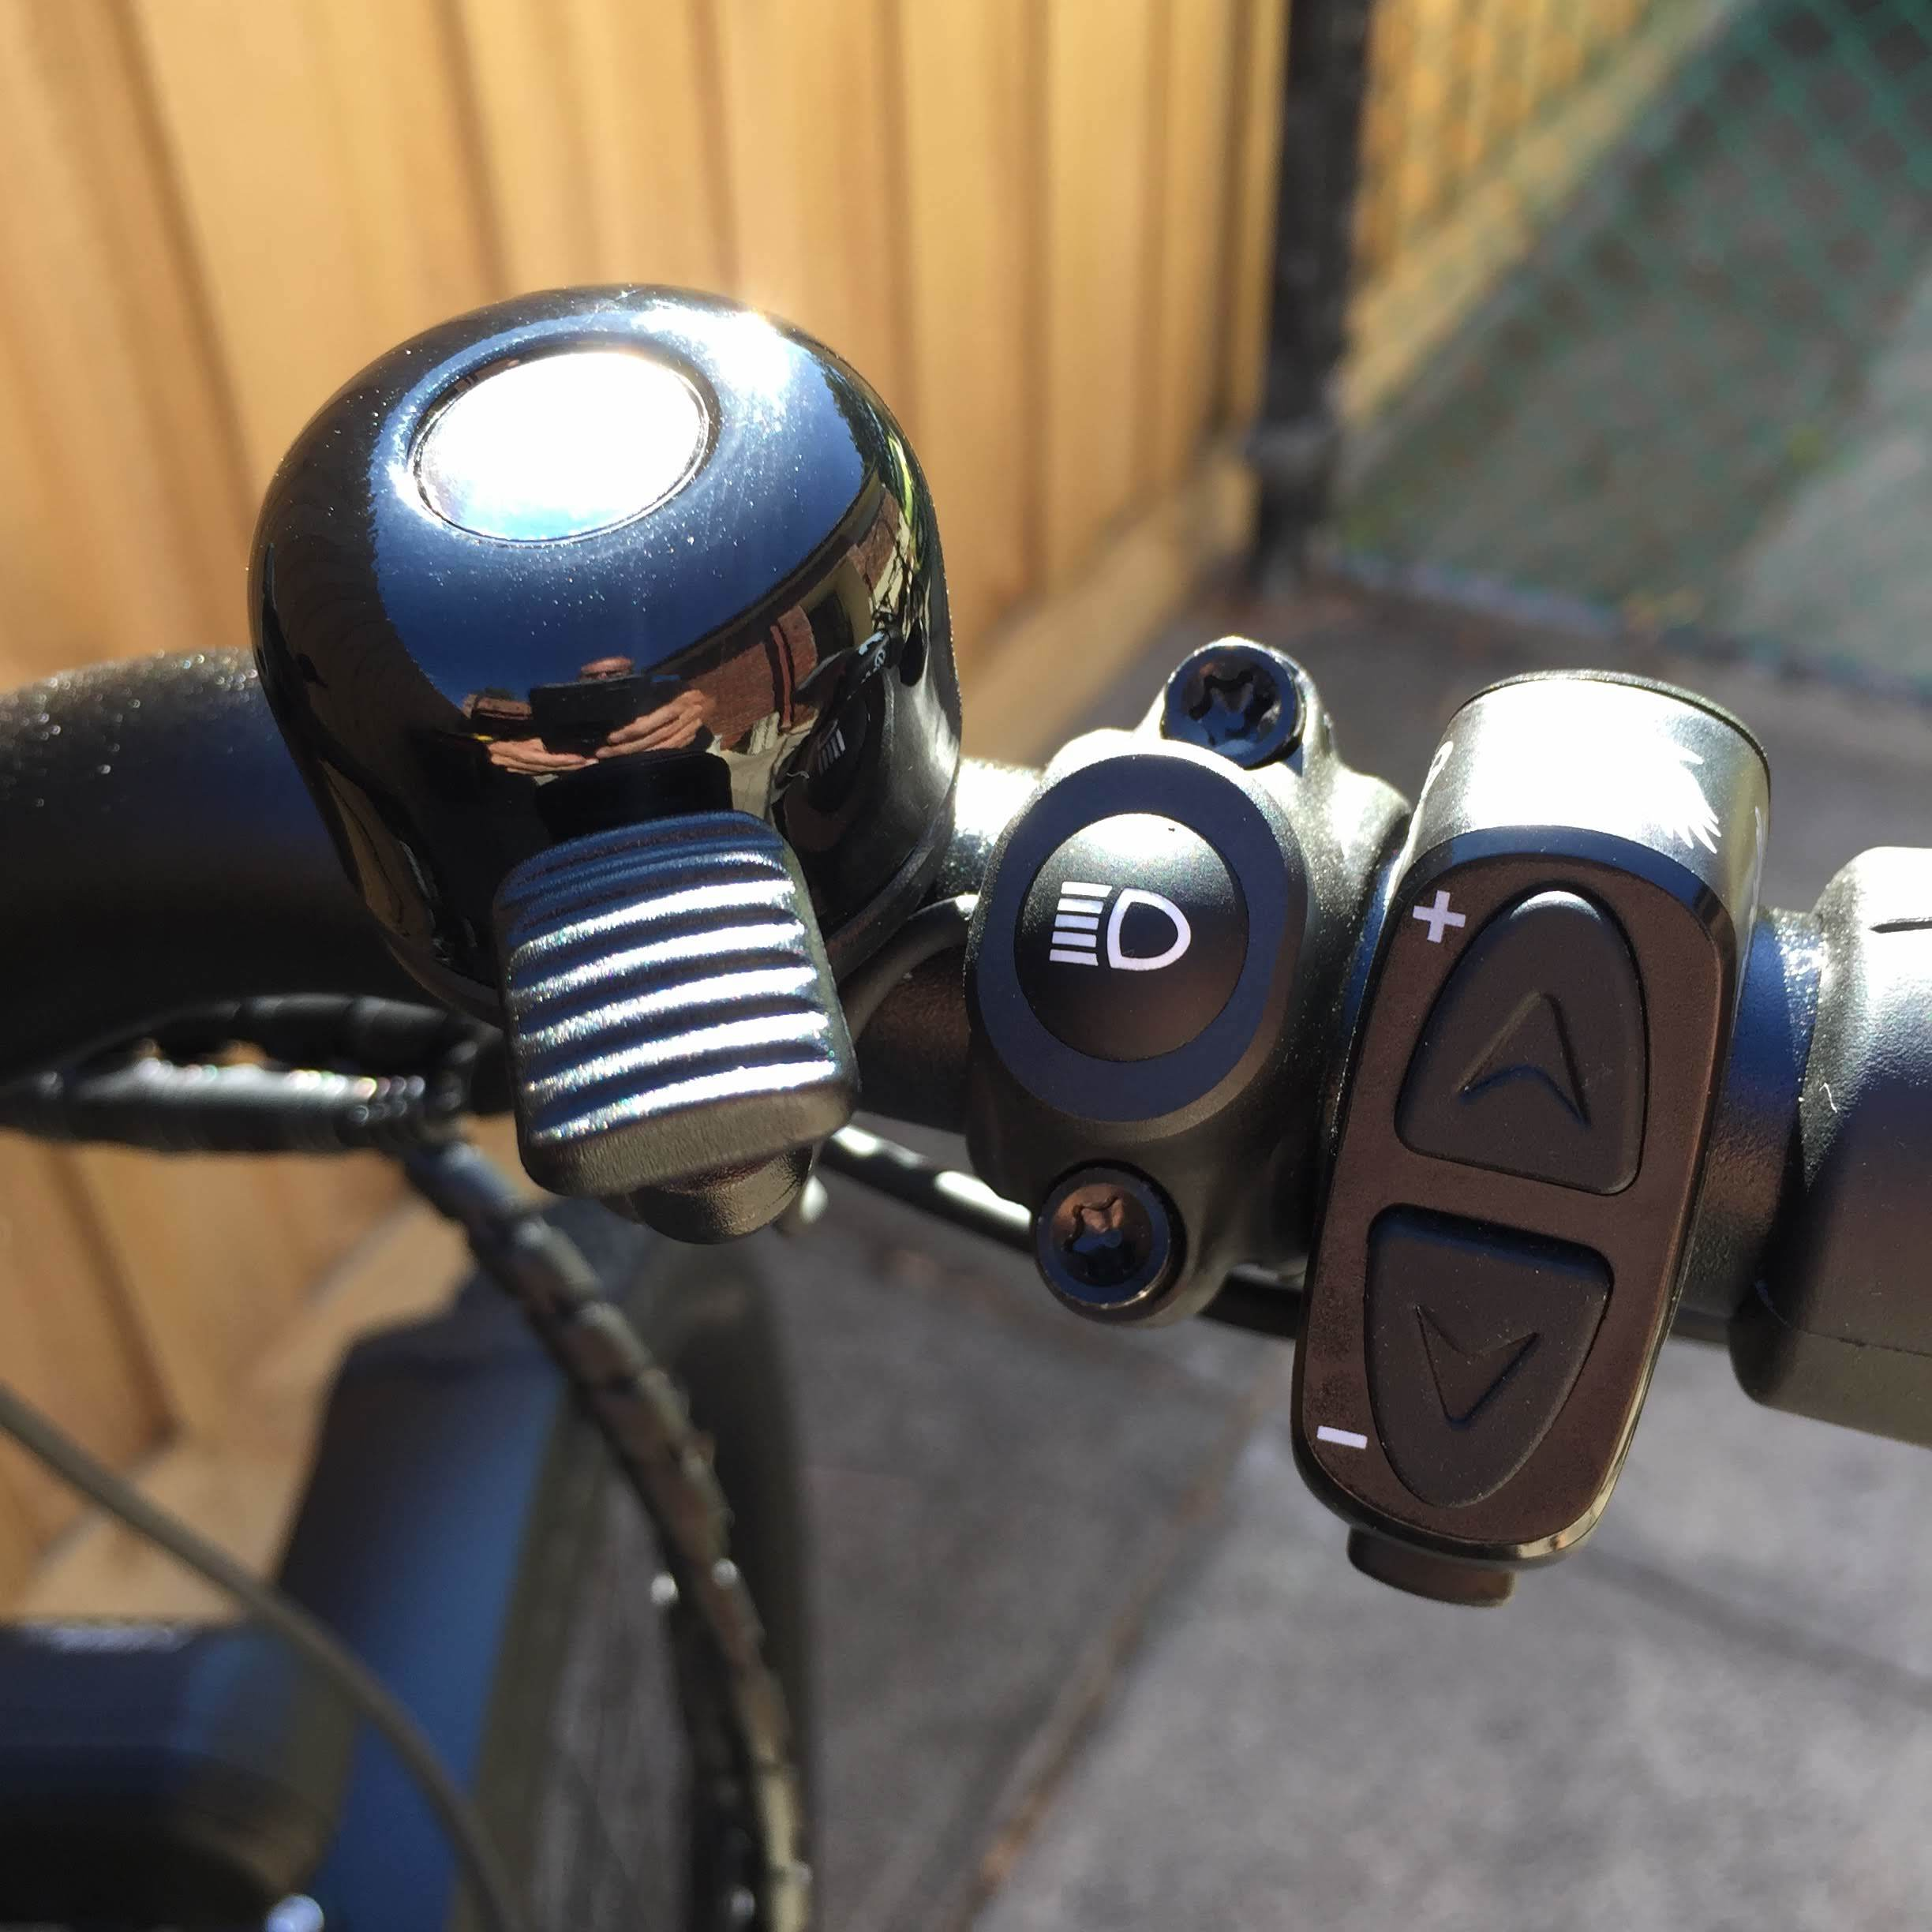 Bell, main/dipped beam and gear shifter